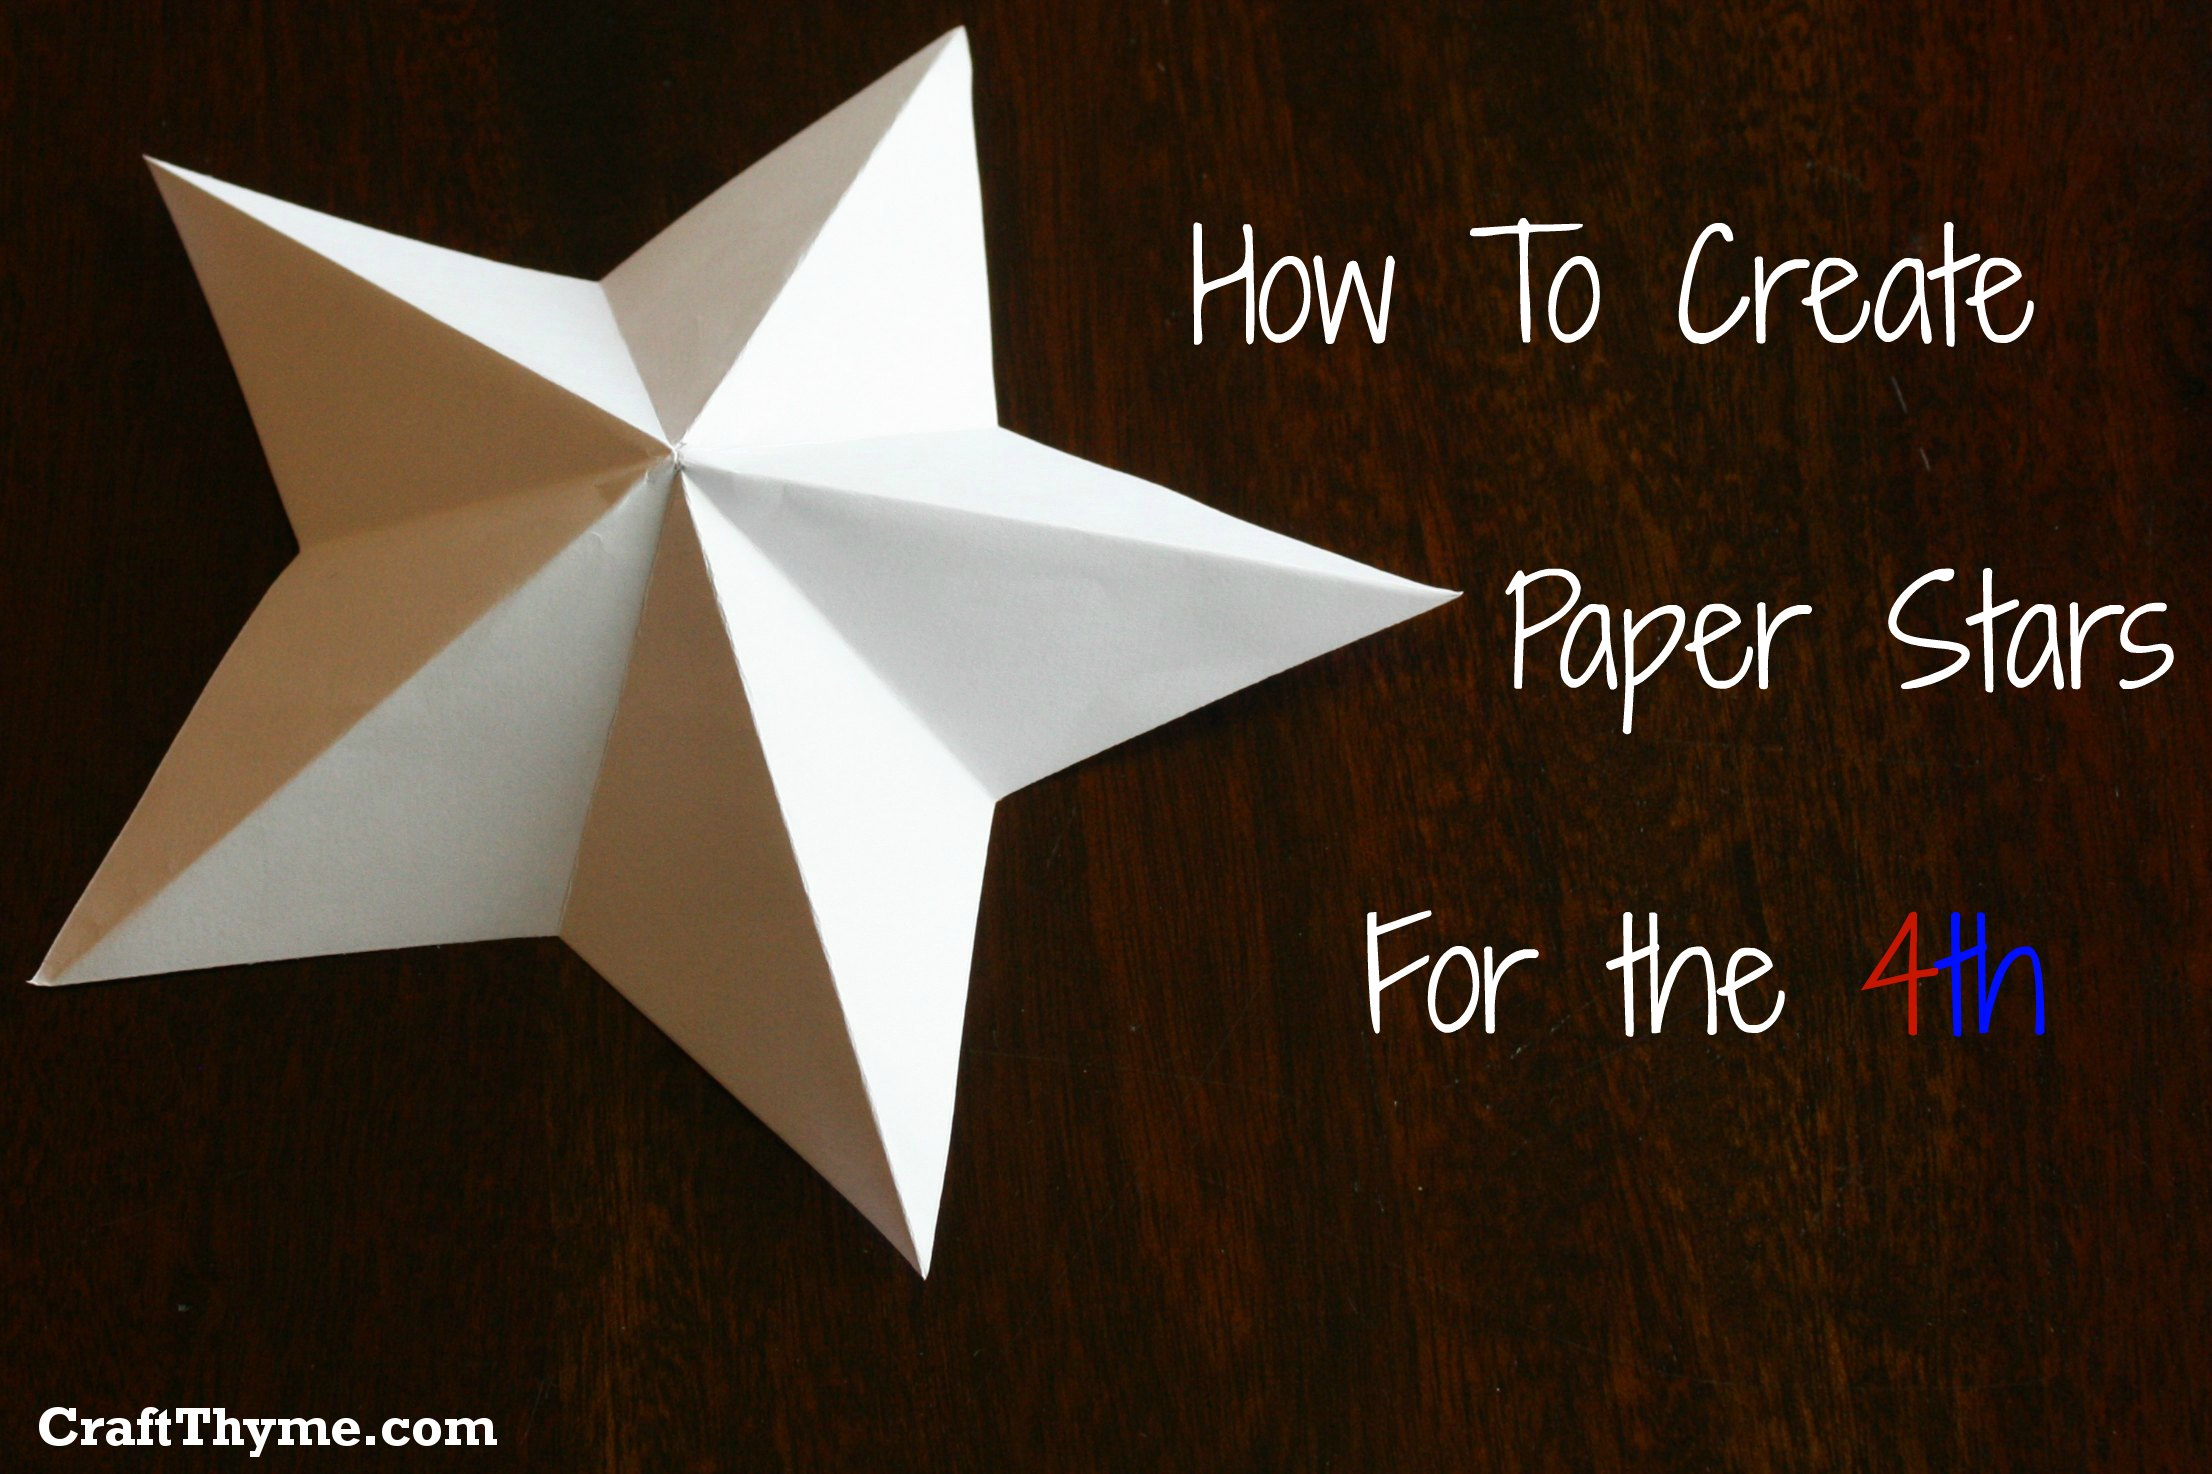 Paper Stars: How To Make 5 Pointed 3-D • Craft Thyme